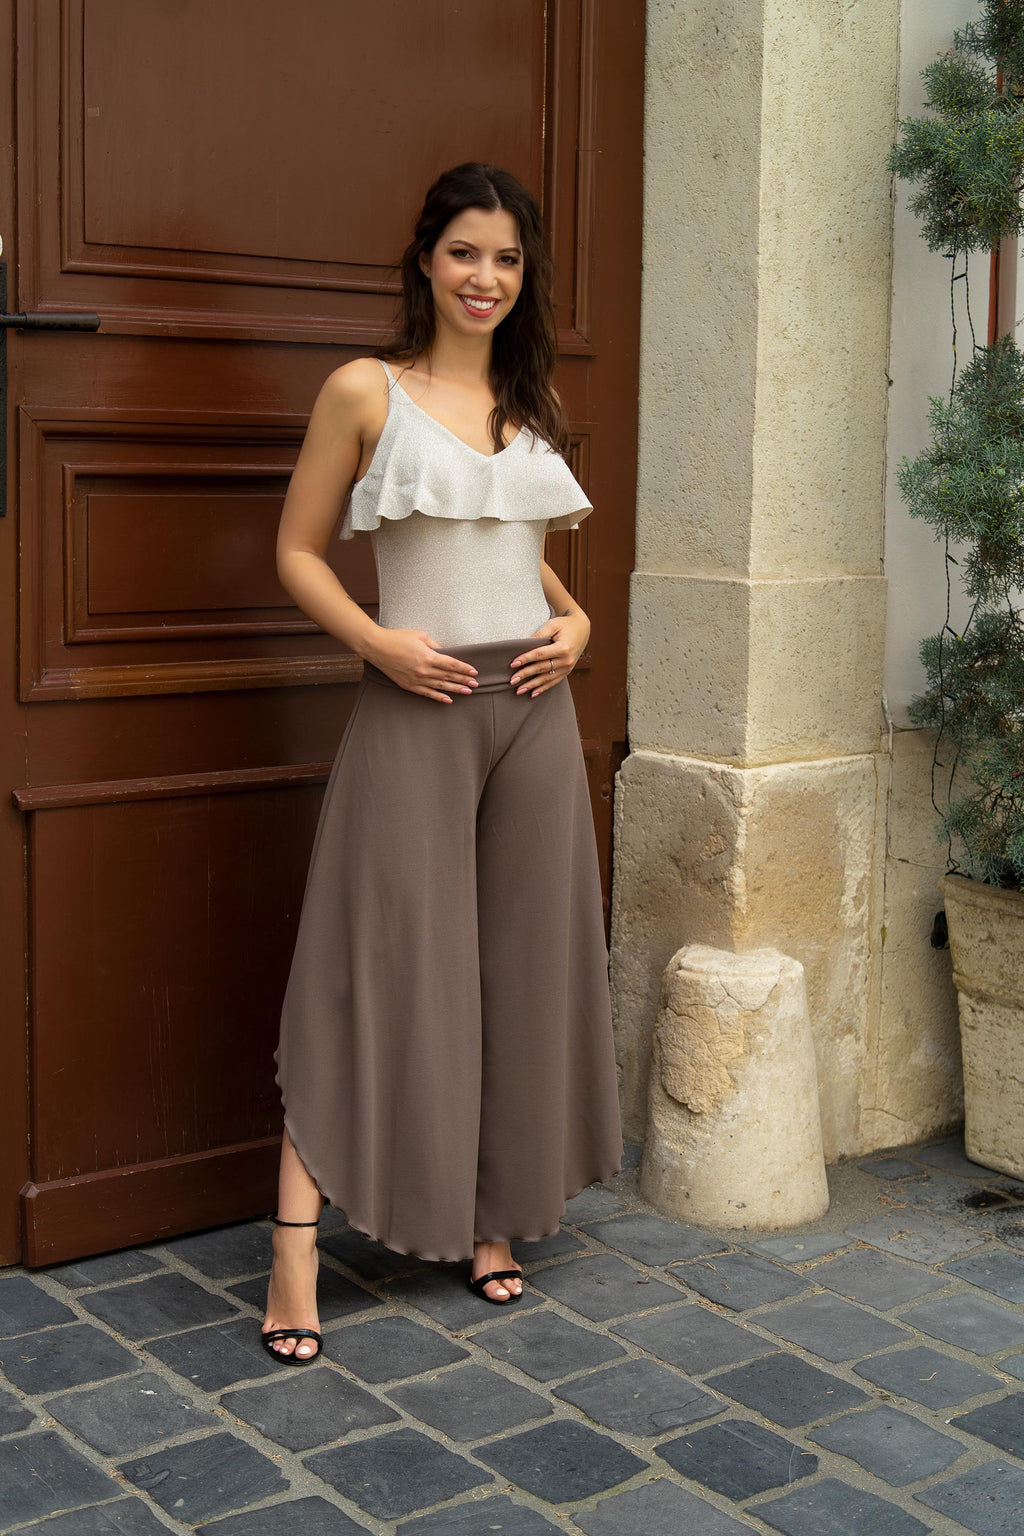 Brown divided skirt